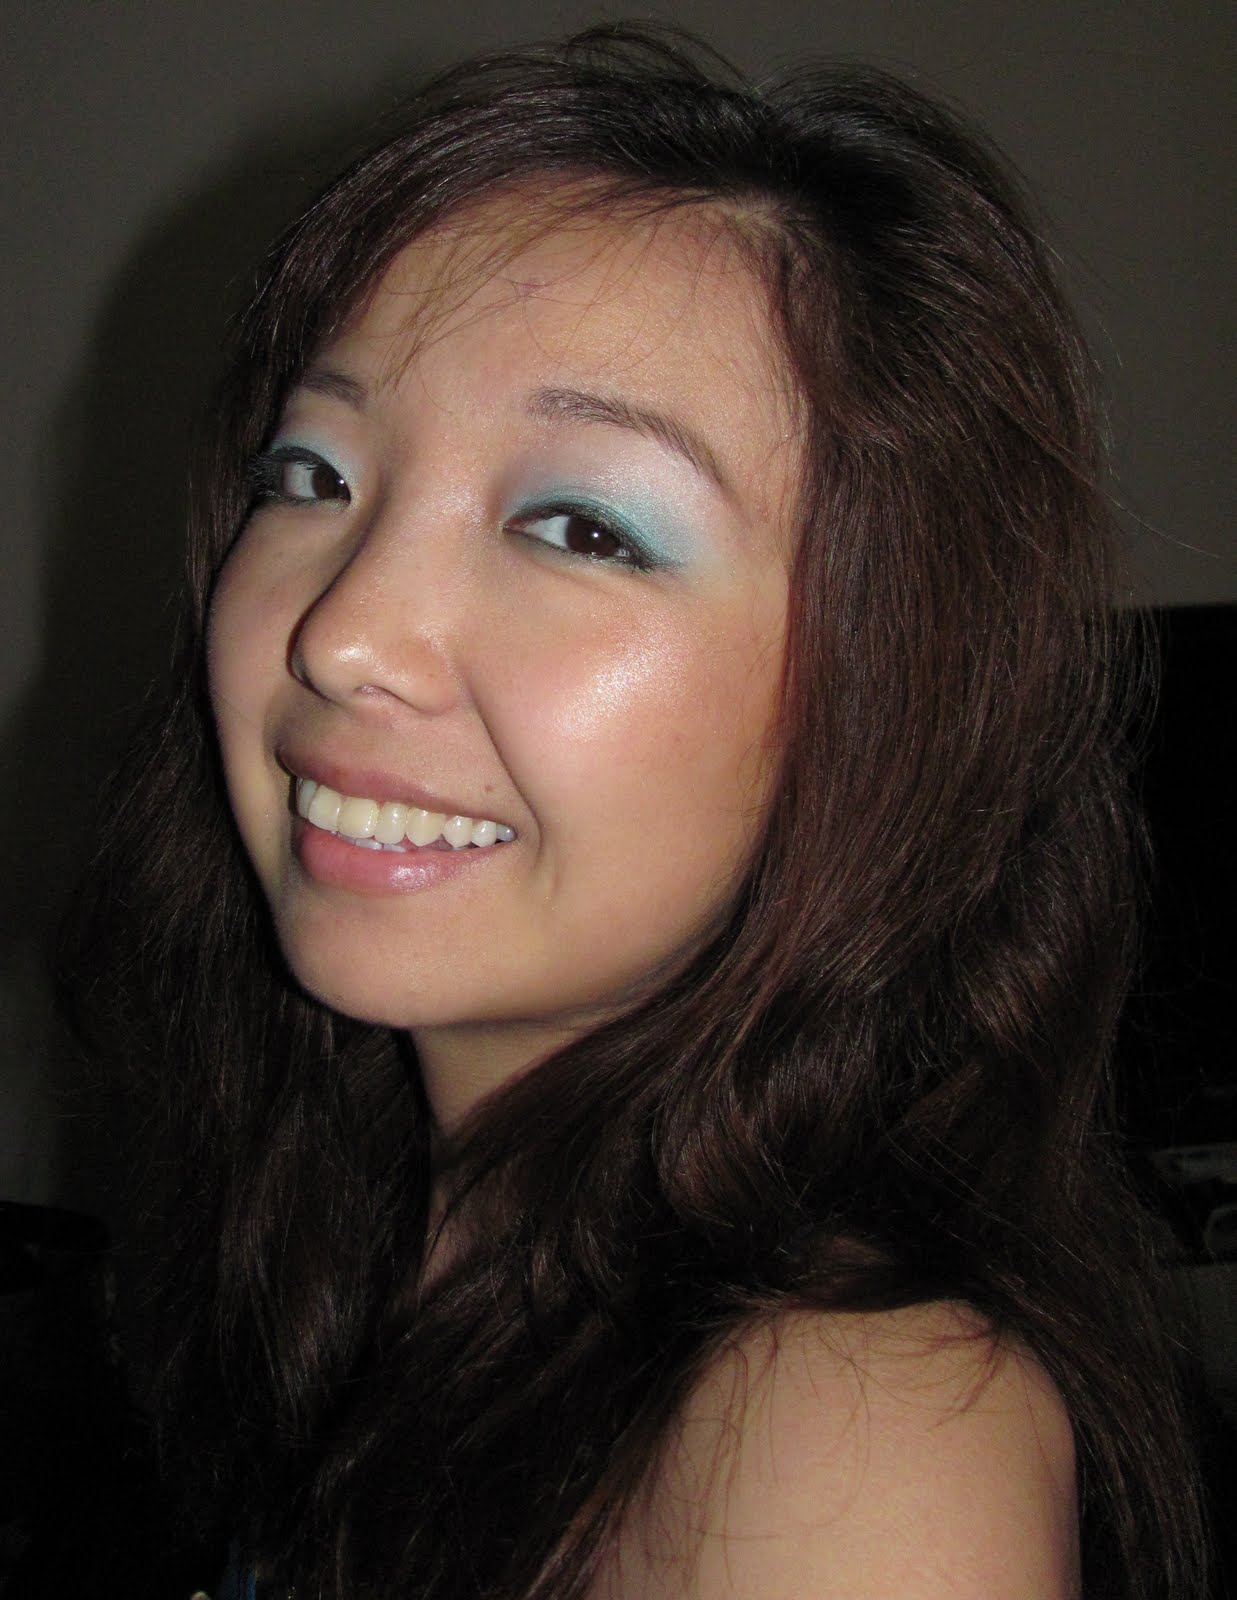 pandaphilia: FOTD: Summer Meadow (Michelle Phan-Inspired)